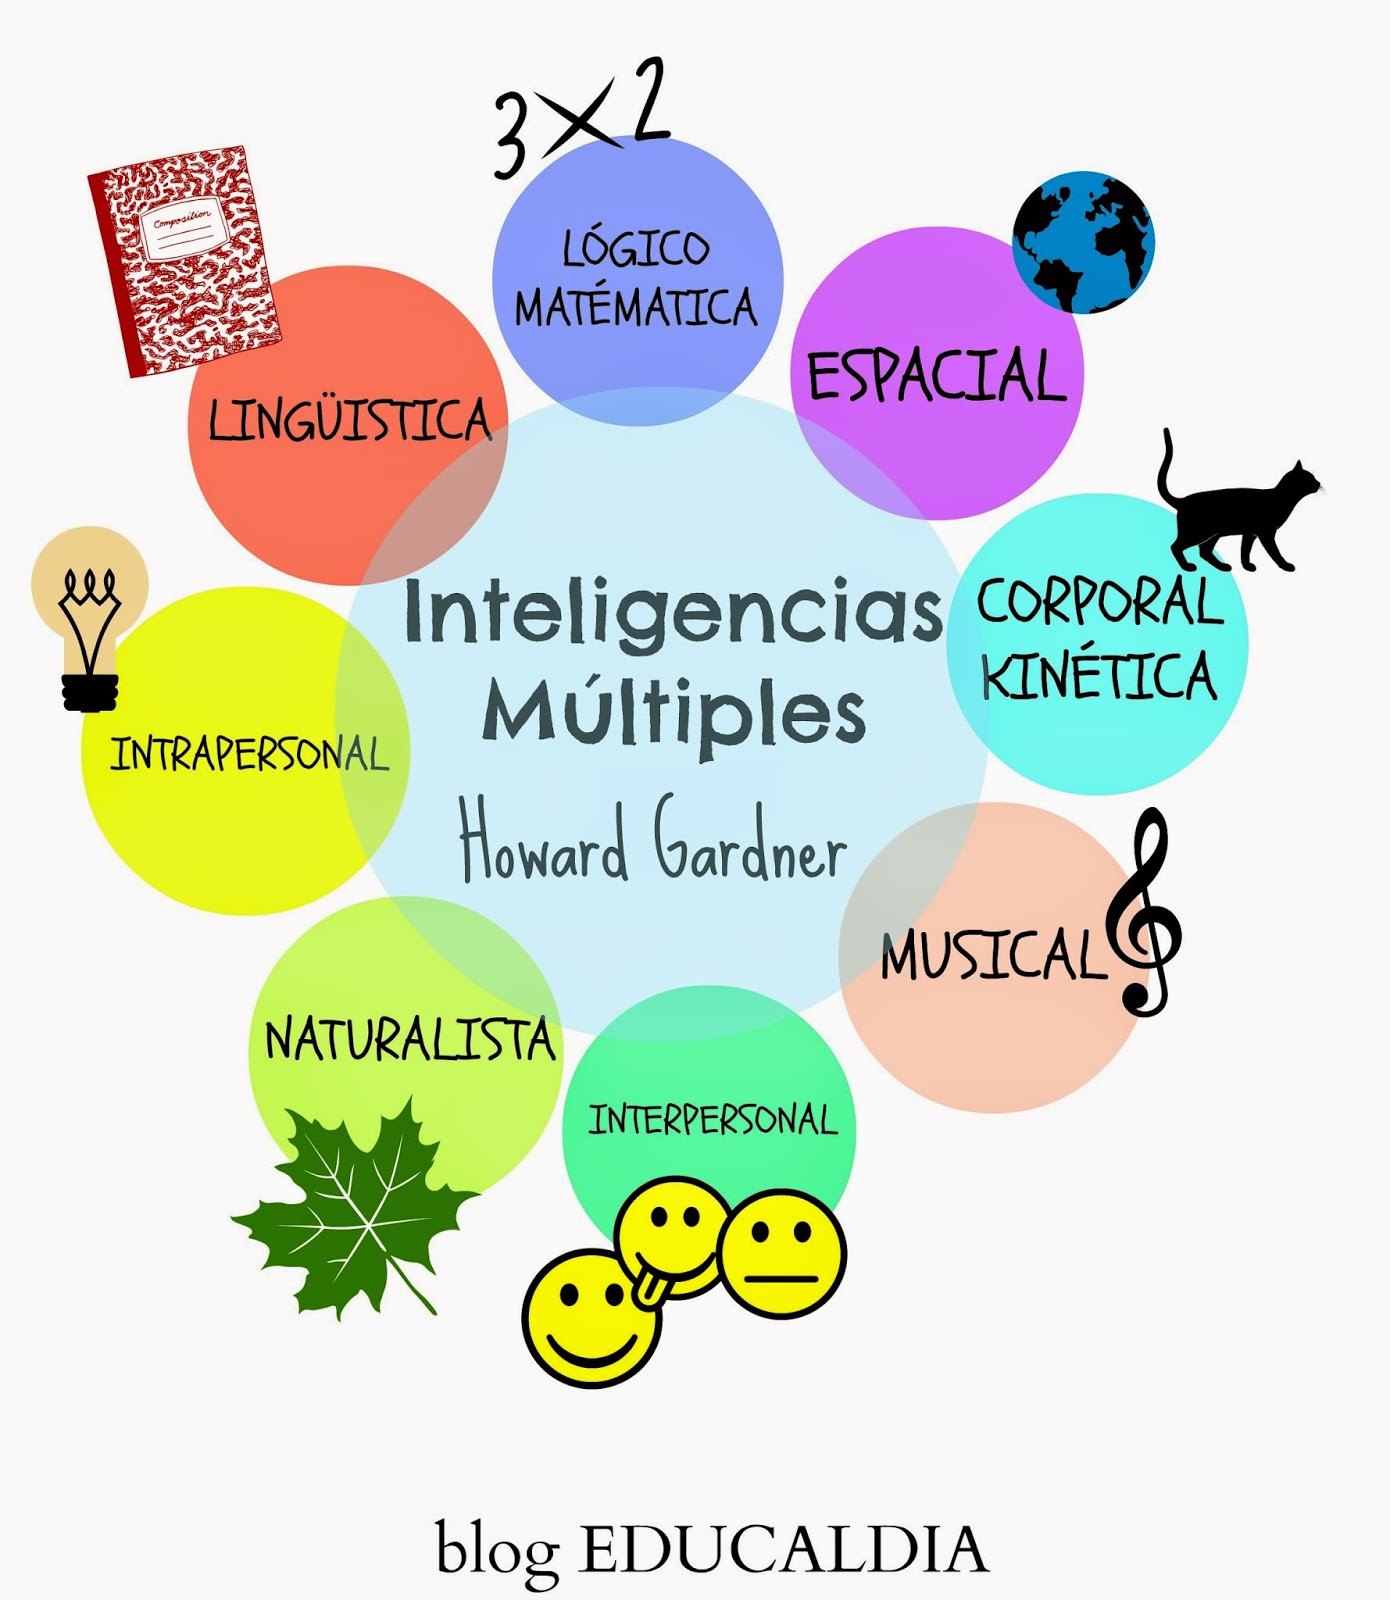 howard gardner inteligencias multiples, esquema